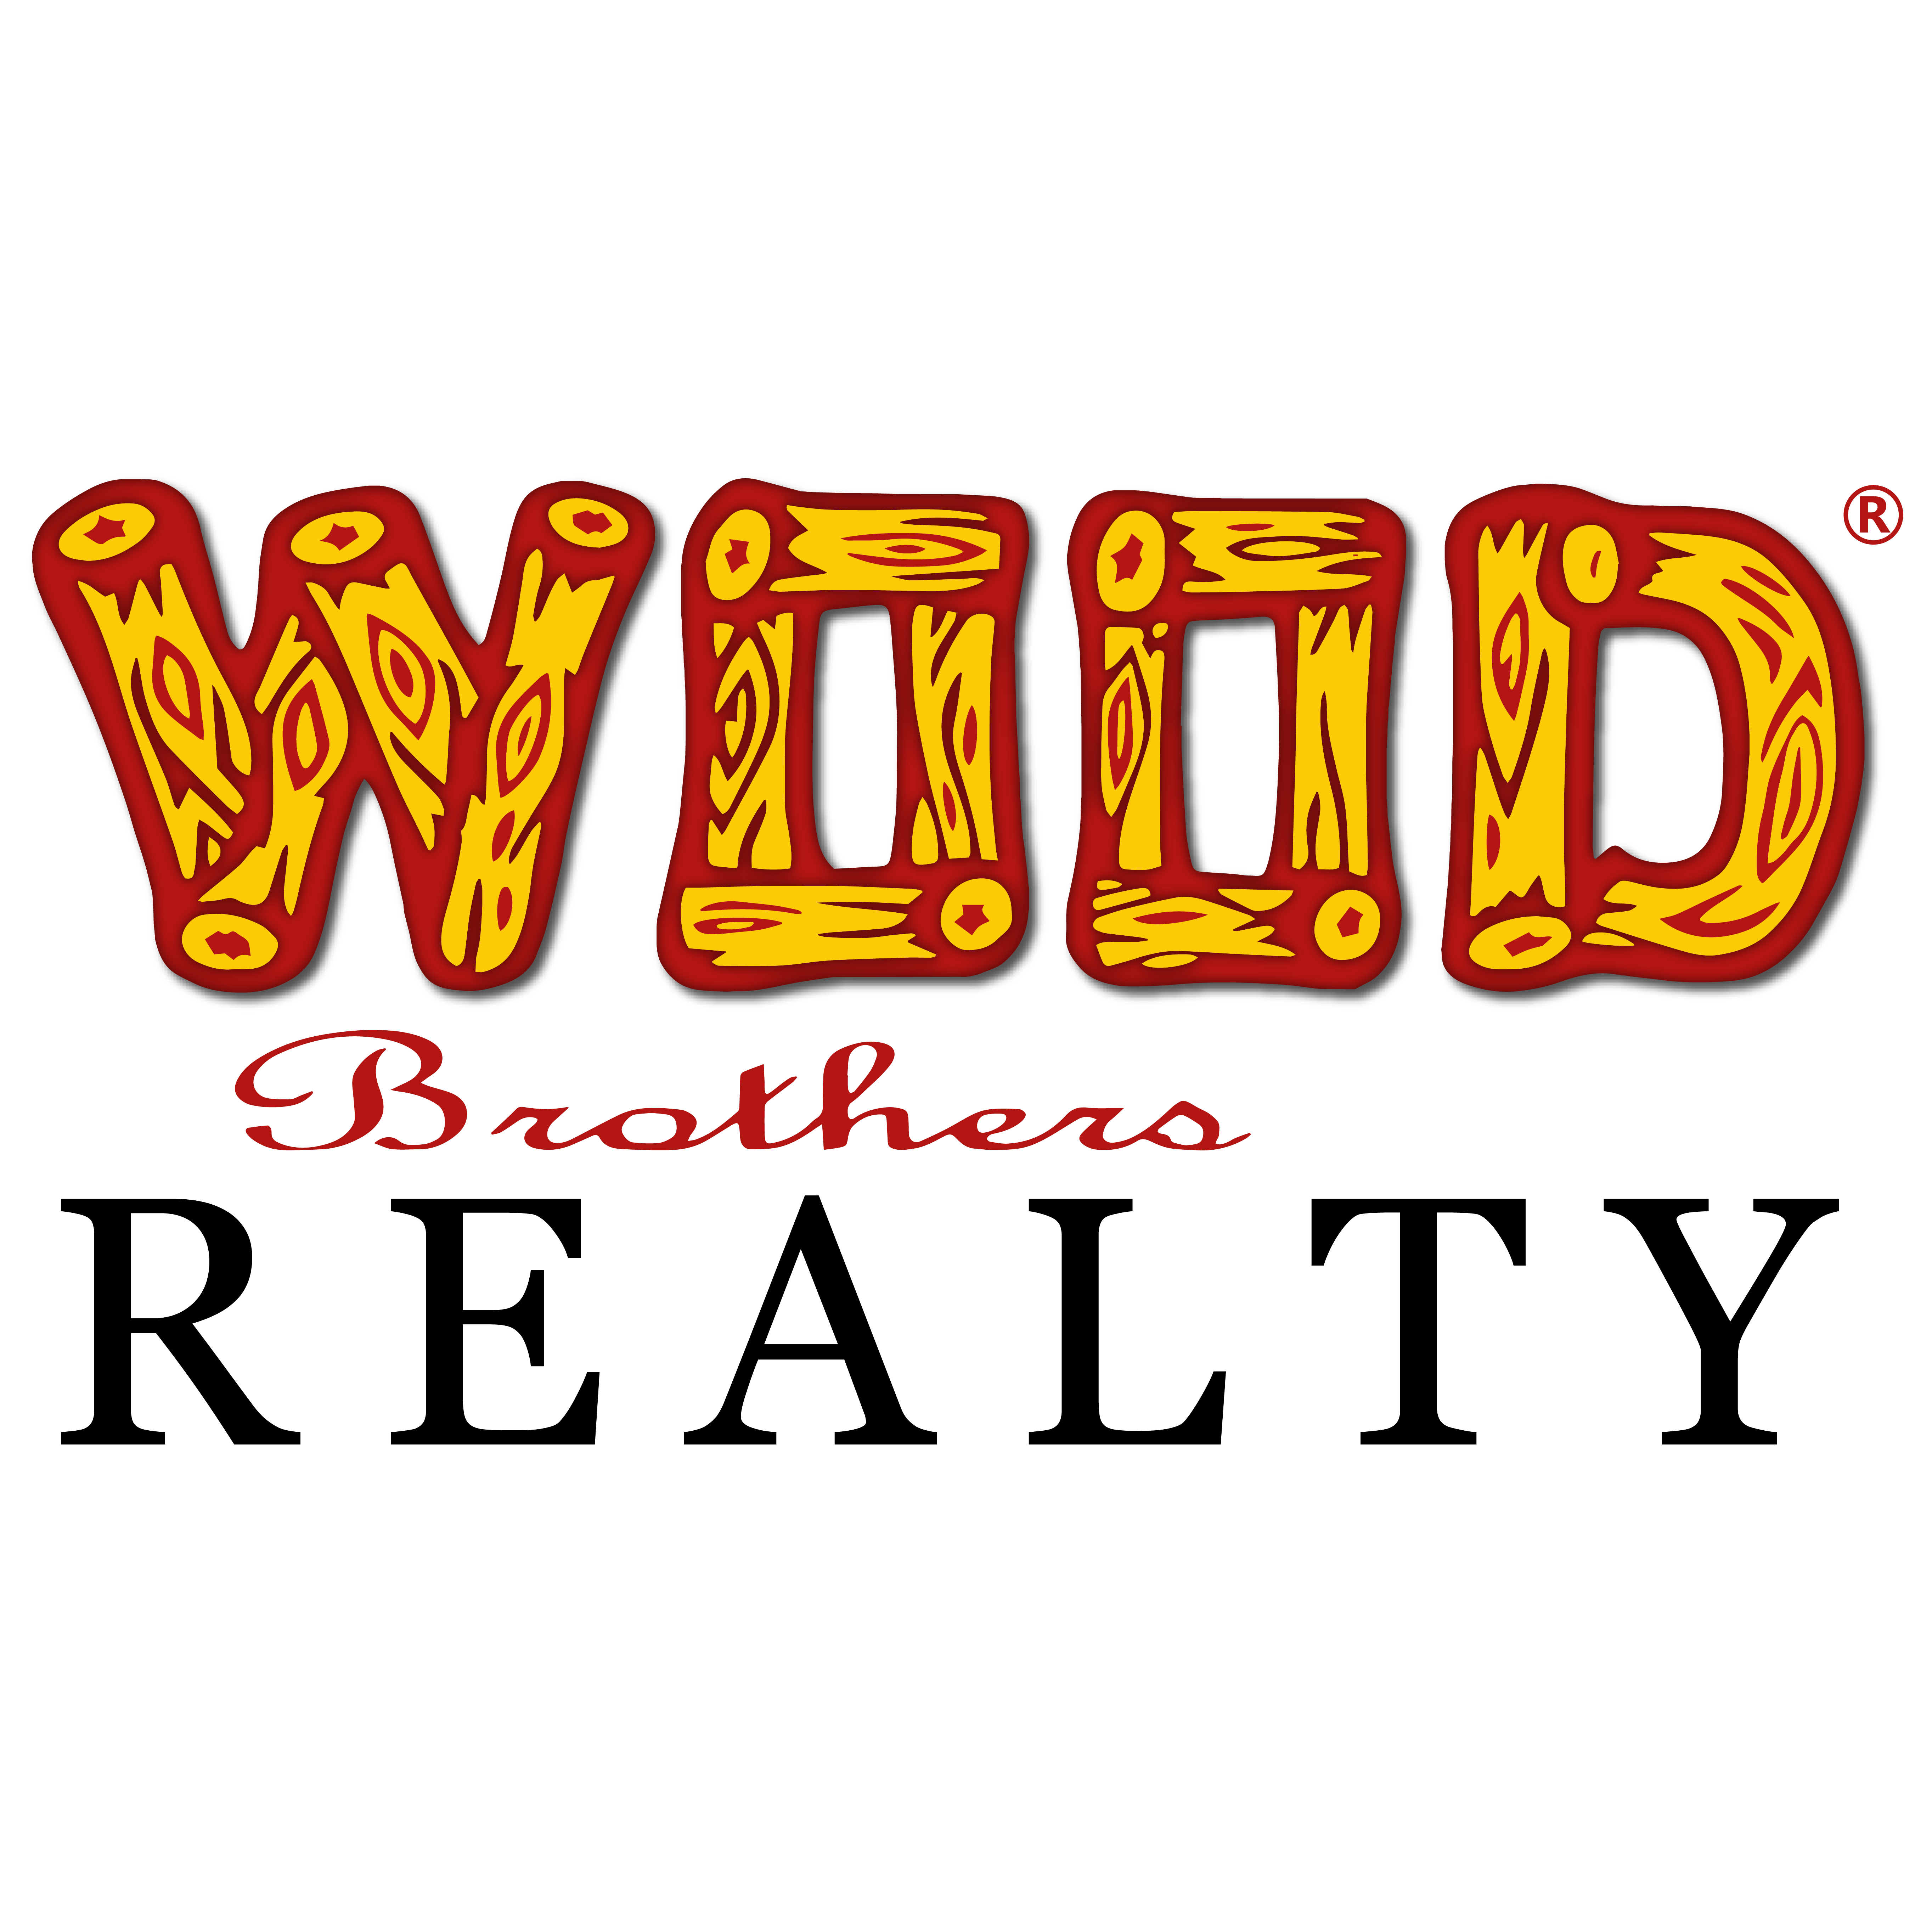 Wood Brothers Realty image 0